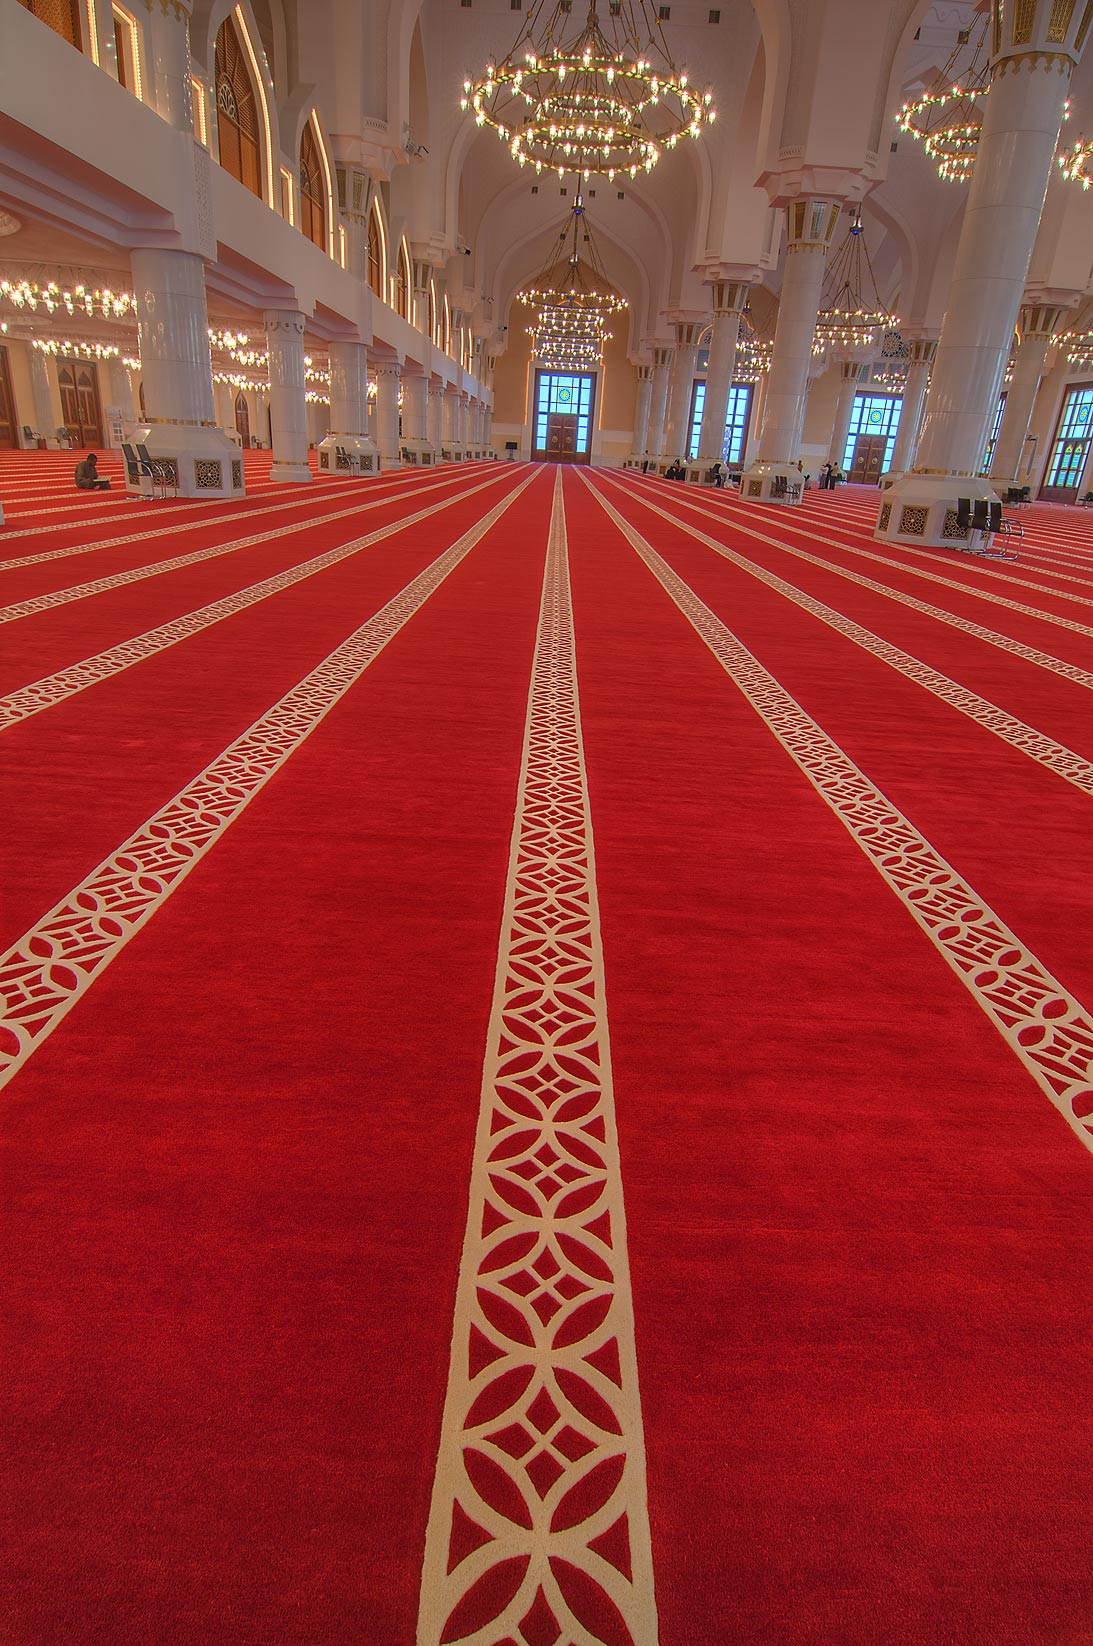 Red carpet showing direction to pray in rows...Ibn Abdul Wahhab Mosque). Doha, Qatar